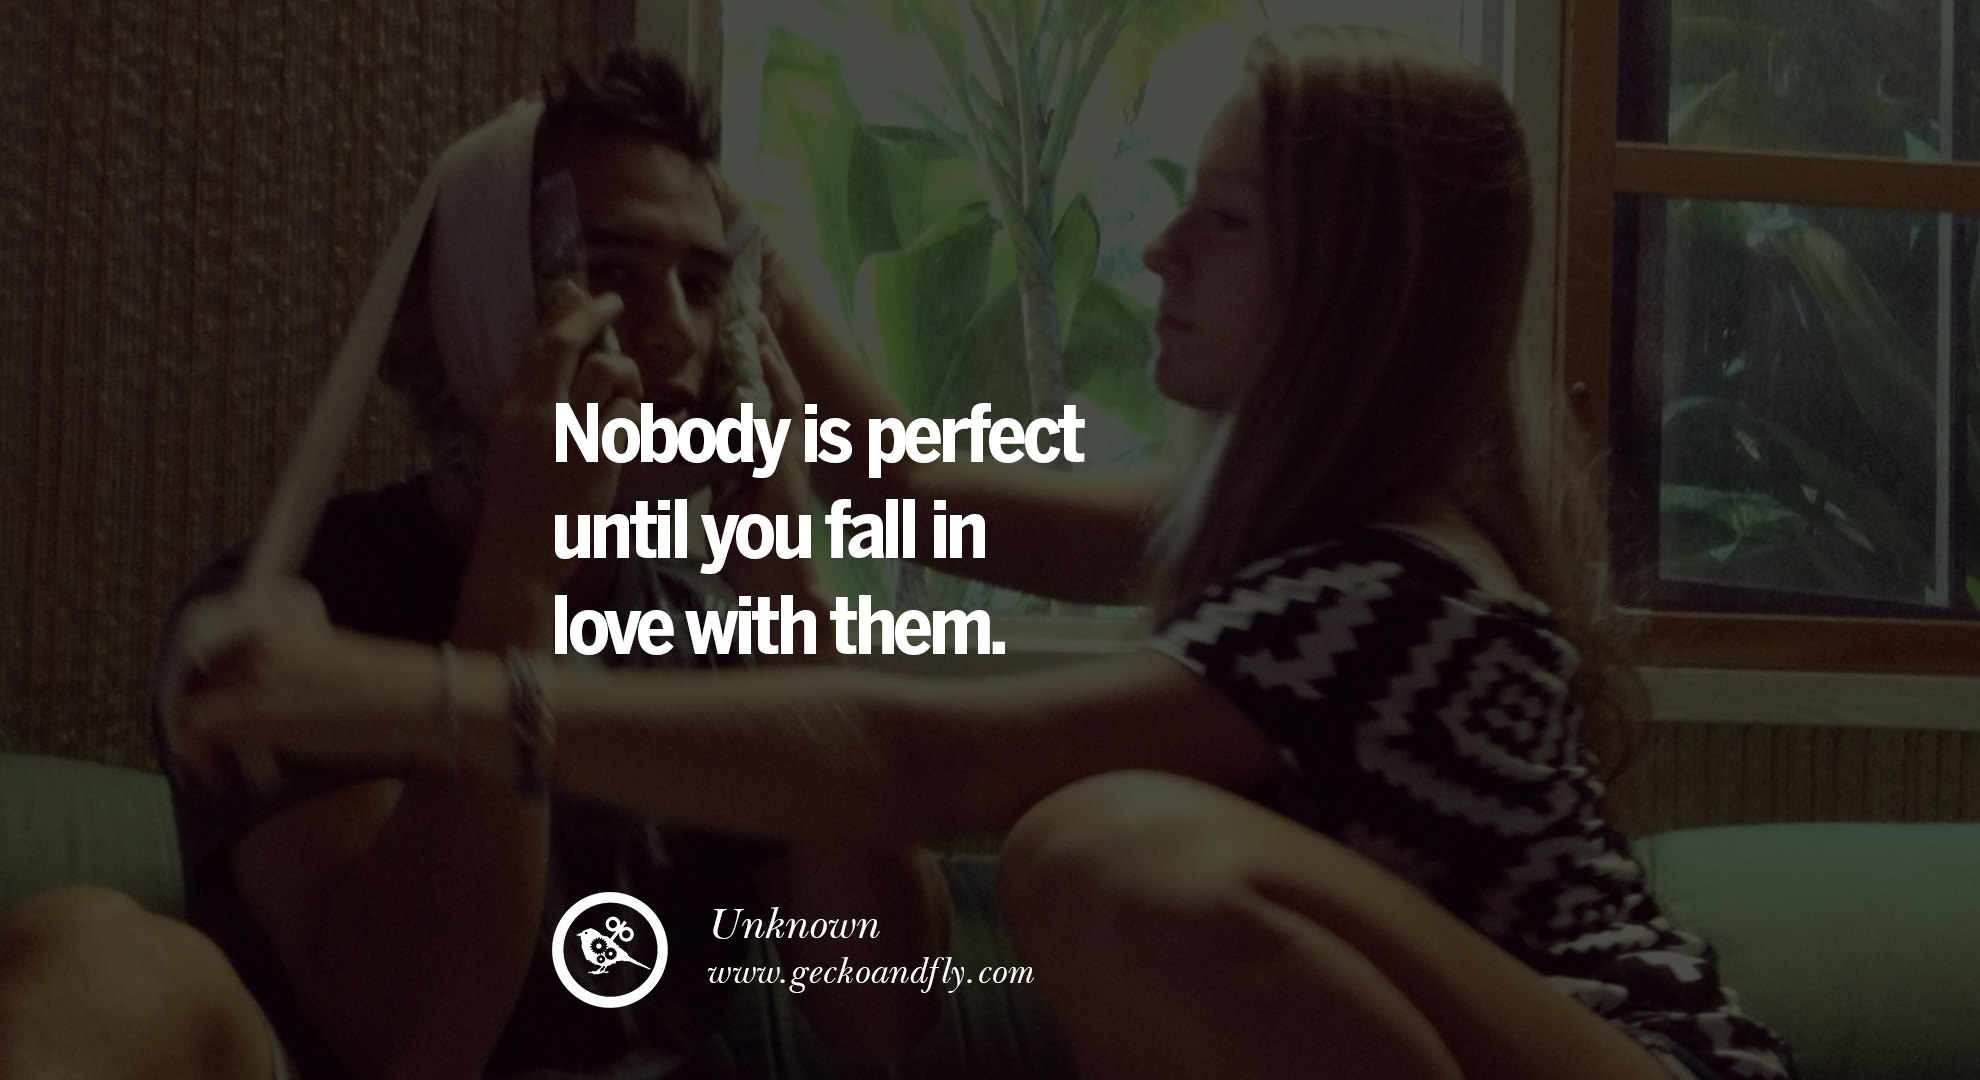 Image of: Sweetheart Nobody Is Perfect Until You Fall In Love With Them Geckoandfly 40 Romantic Quotes About Love Life Marriage And Relationships